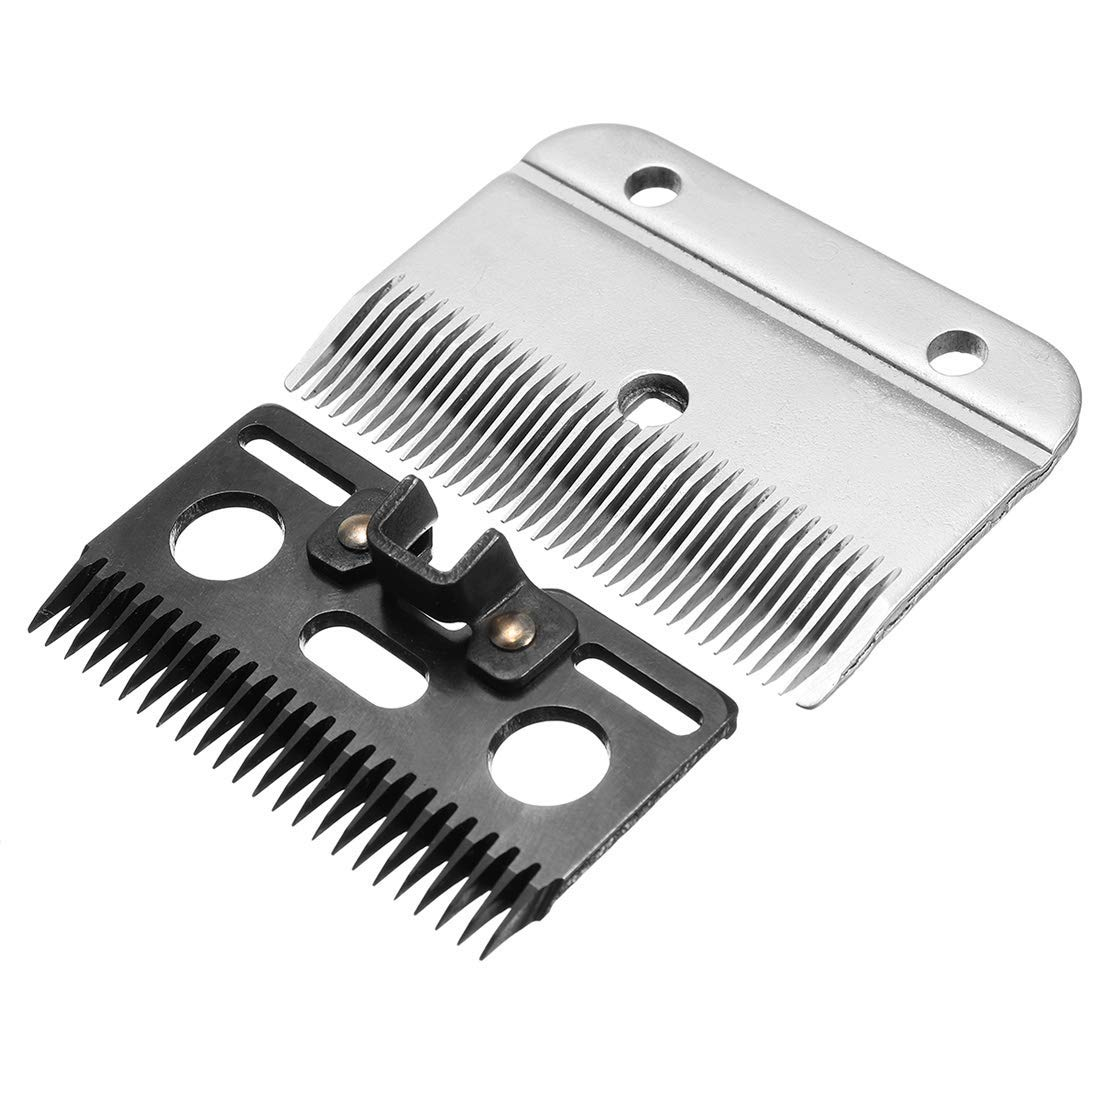 GTTBS-jd Horse Clipper Blades/Electric Horse Hair Clipper Blade Combs Shear Blades Replacement Goat Clipper Blades, Fast Cut Ideal Blades Compatible with Horse Clippers 24 Teeth + 35 Teeth